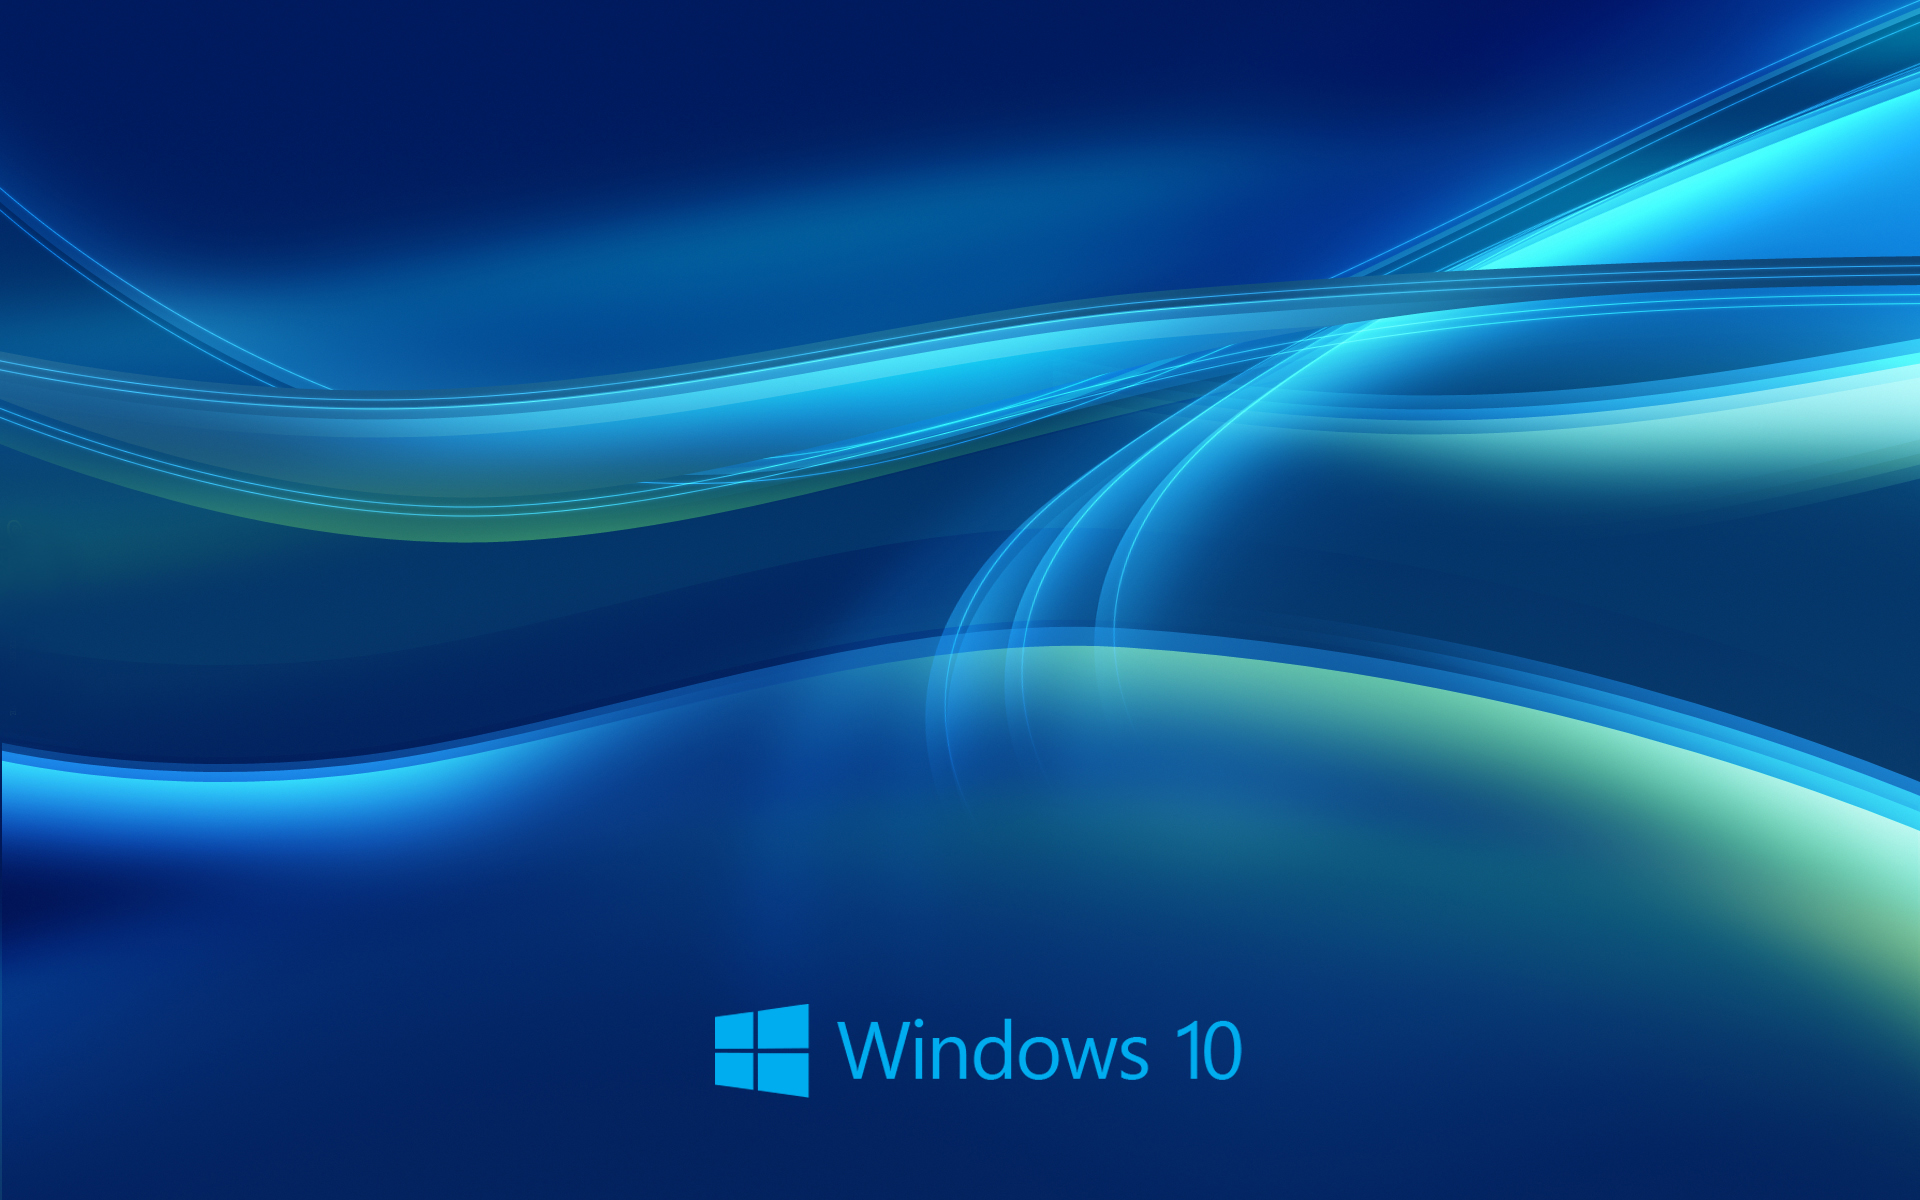 windows 8 hd 3d wallpapers | hdwallpapers4free